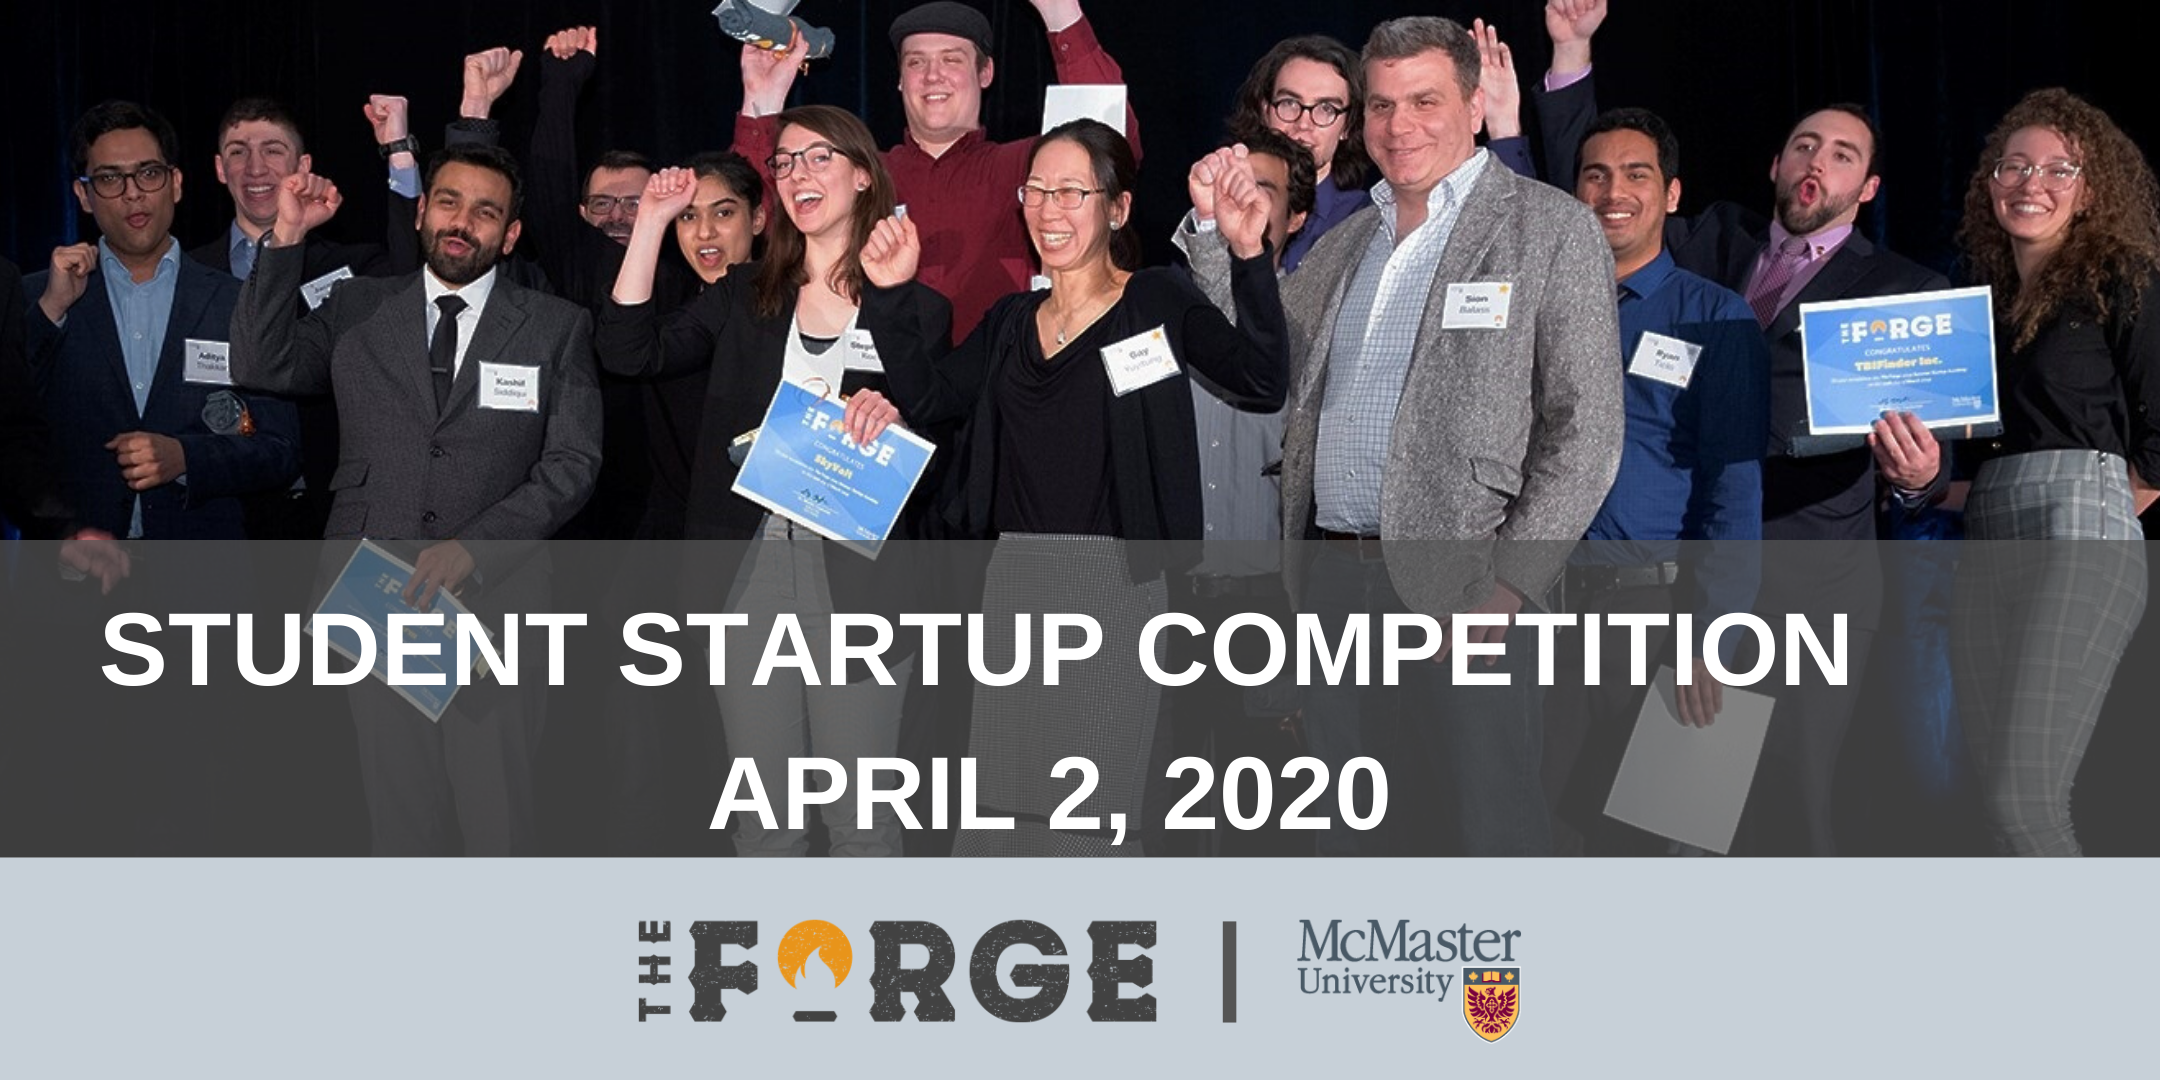 The Forge Student Startup Competition 2020